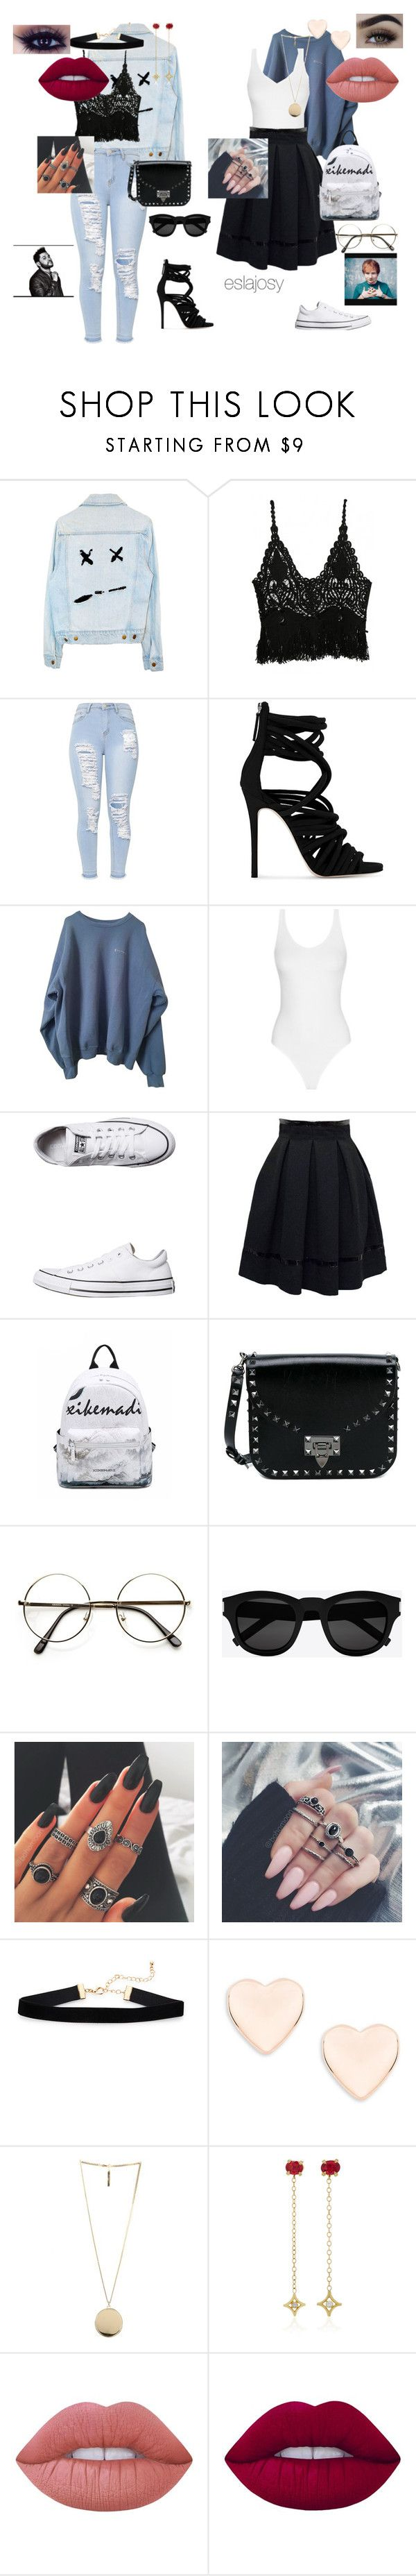 """The Weeknd Ft. Ed Sheeran"" by eslajosy ❤ liked on Polyvore featuring WithChic, Giuseppe Zanotti, Converse, Valentino, Yves Saint Laurent, Ted Baker, Givenchy, Jordan Alexander and Lime Crime"